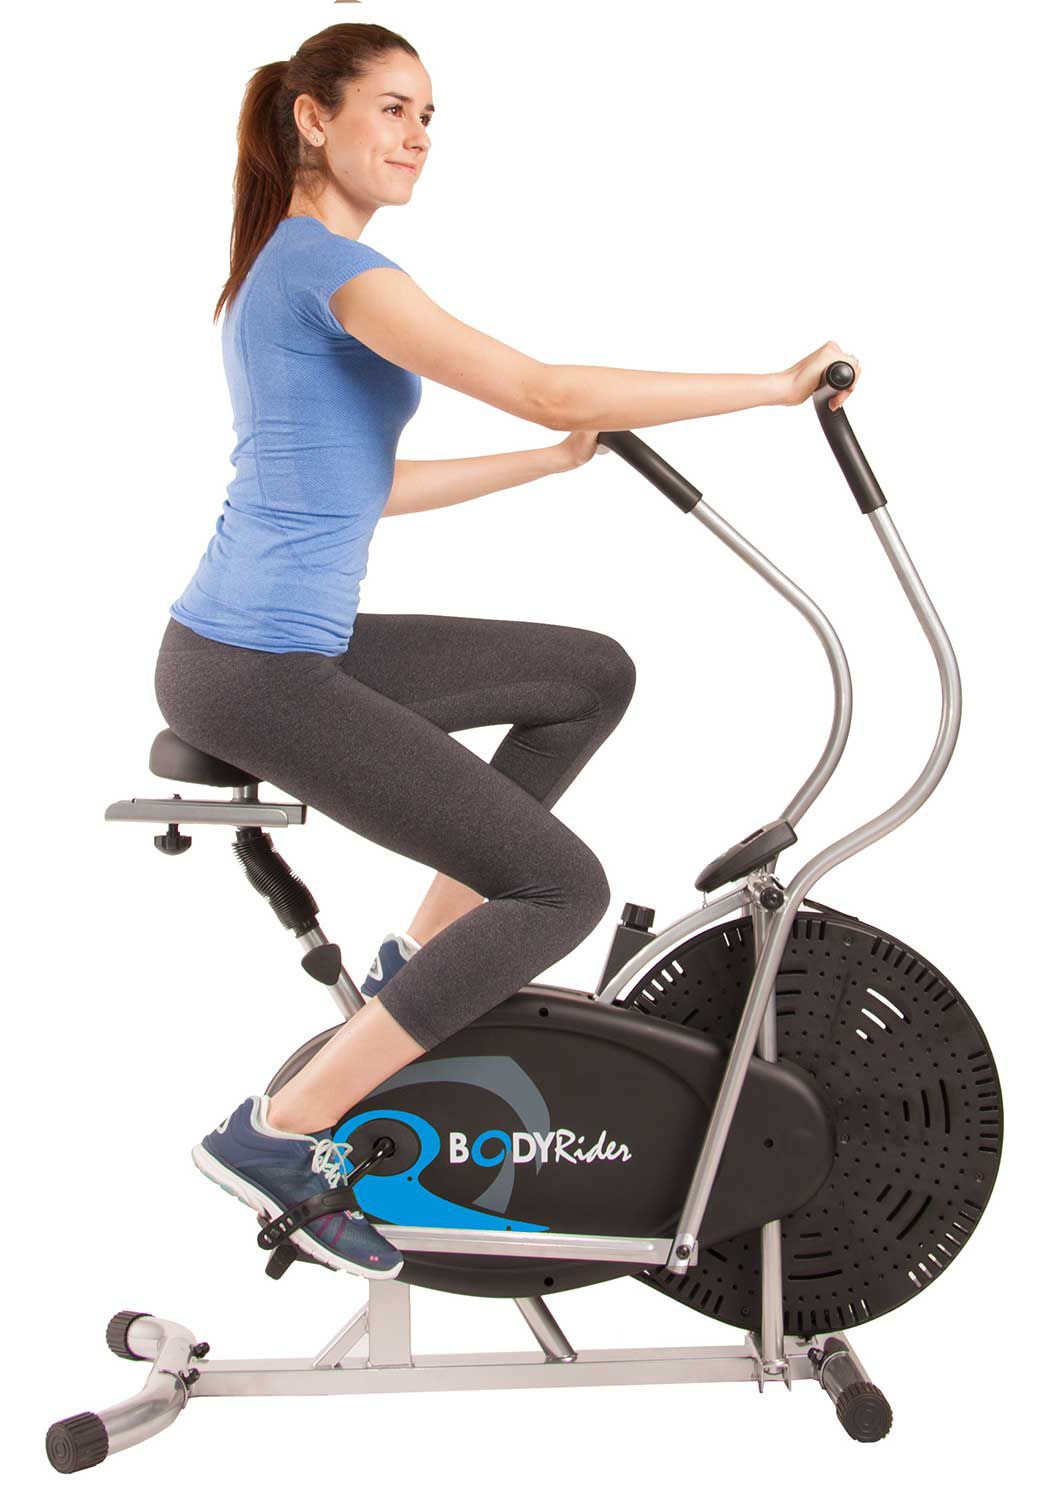 fan exercise bike. noimagefound ??? fan exercise bike